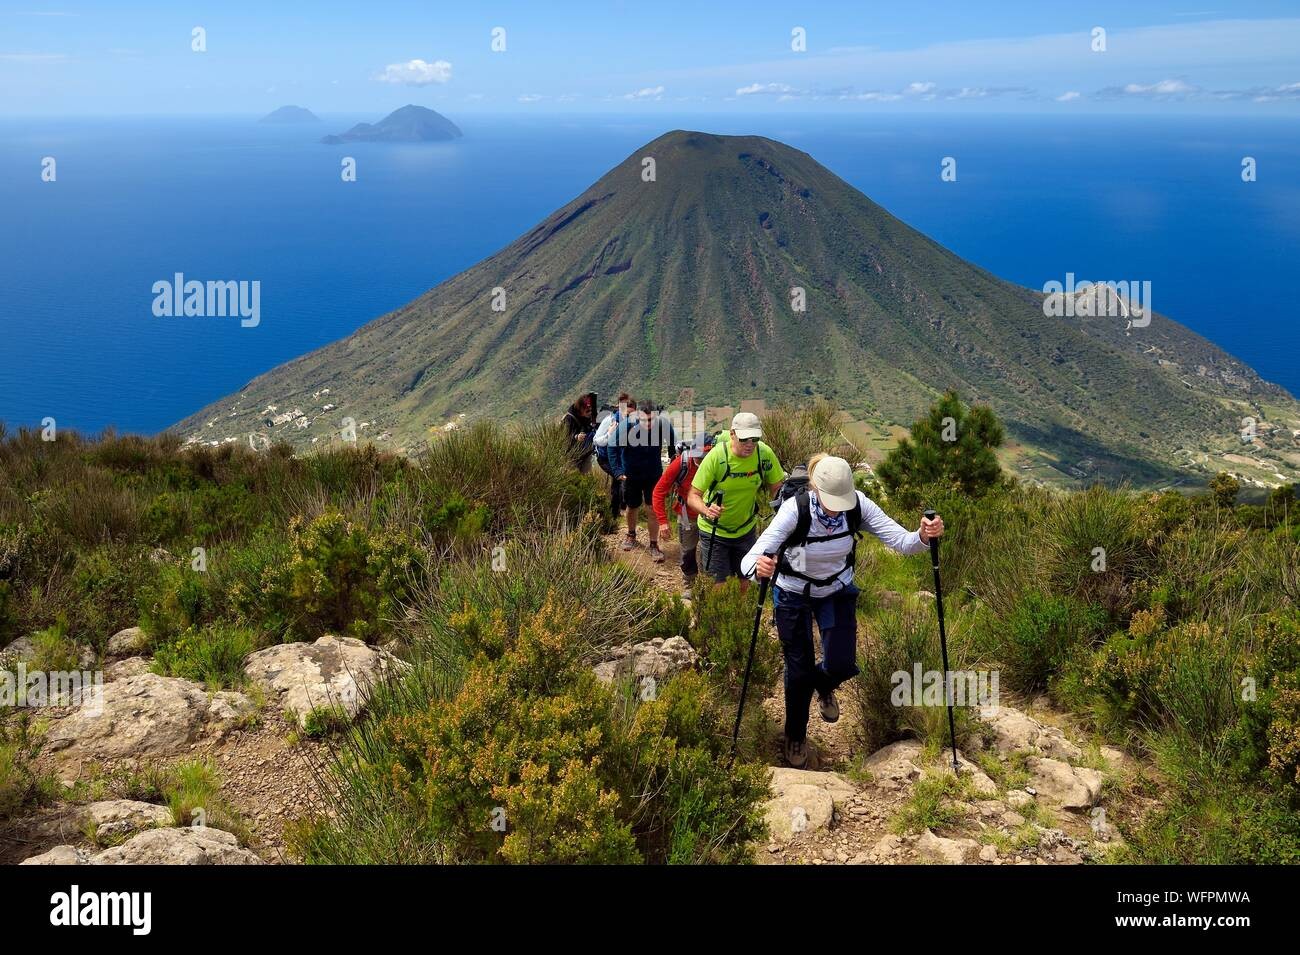 Italy, Sicily, Aeolian Islands, listed as World Heritage by UNESCO, Salina Island, hikers at the summit of the ancient volcano Monte Fossa delle Felci with the twin volcano Monte dei Porri, the islands of Filicudi and Alicudi in the background Stock Photo